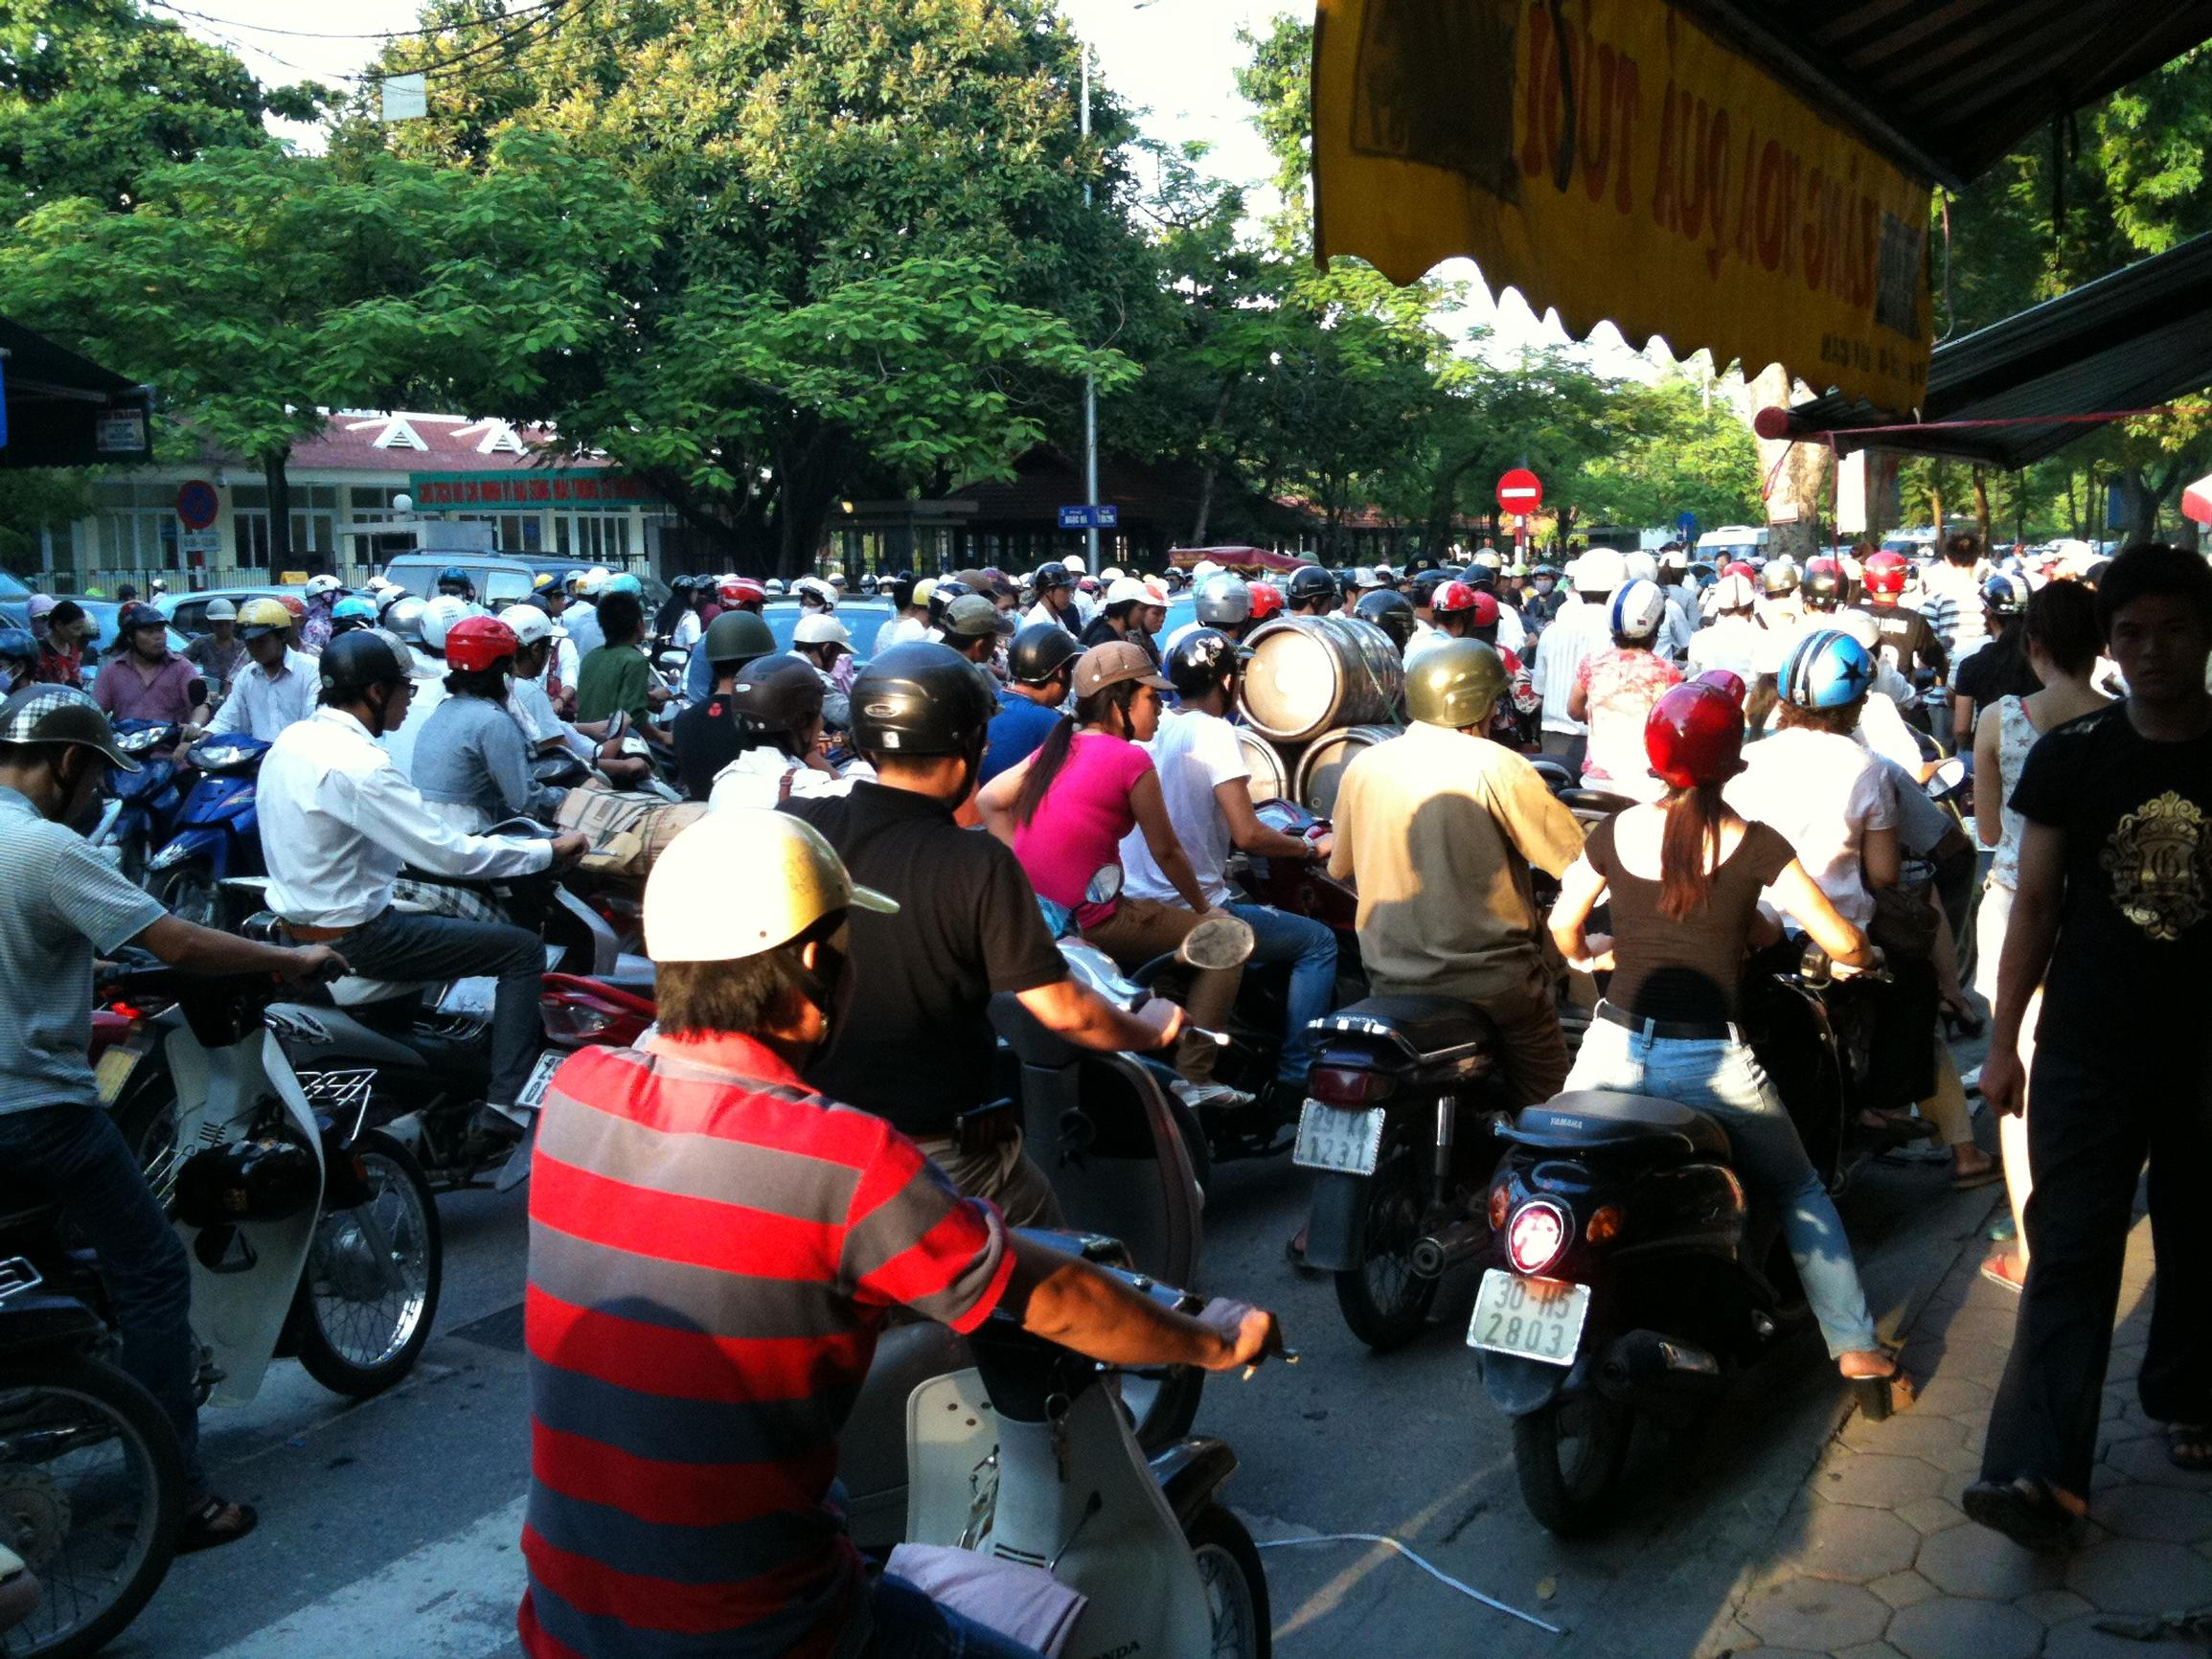 Falling bus use spurs concern over taxi apps and motorbike ban anxiety in Vietnam